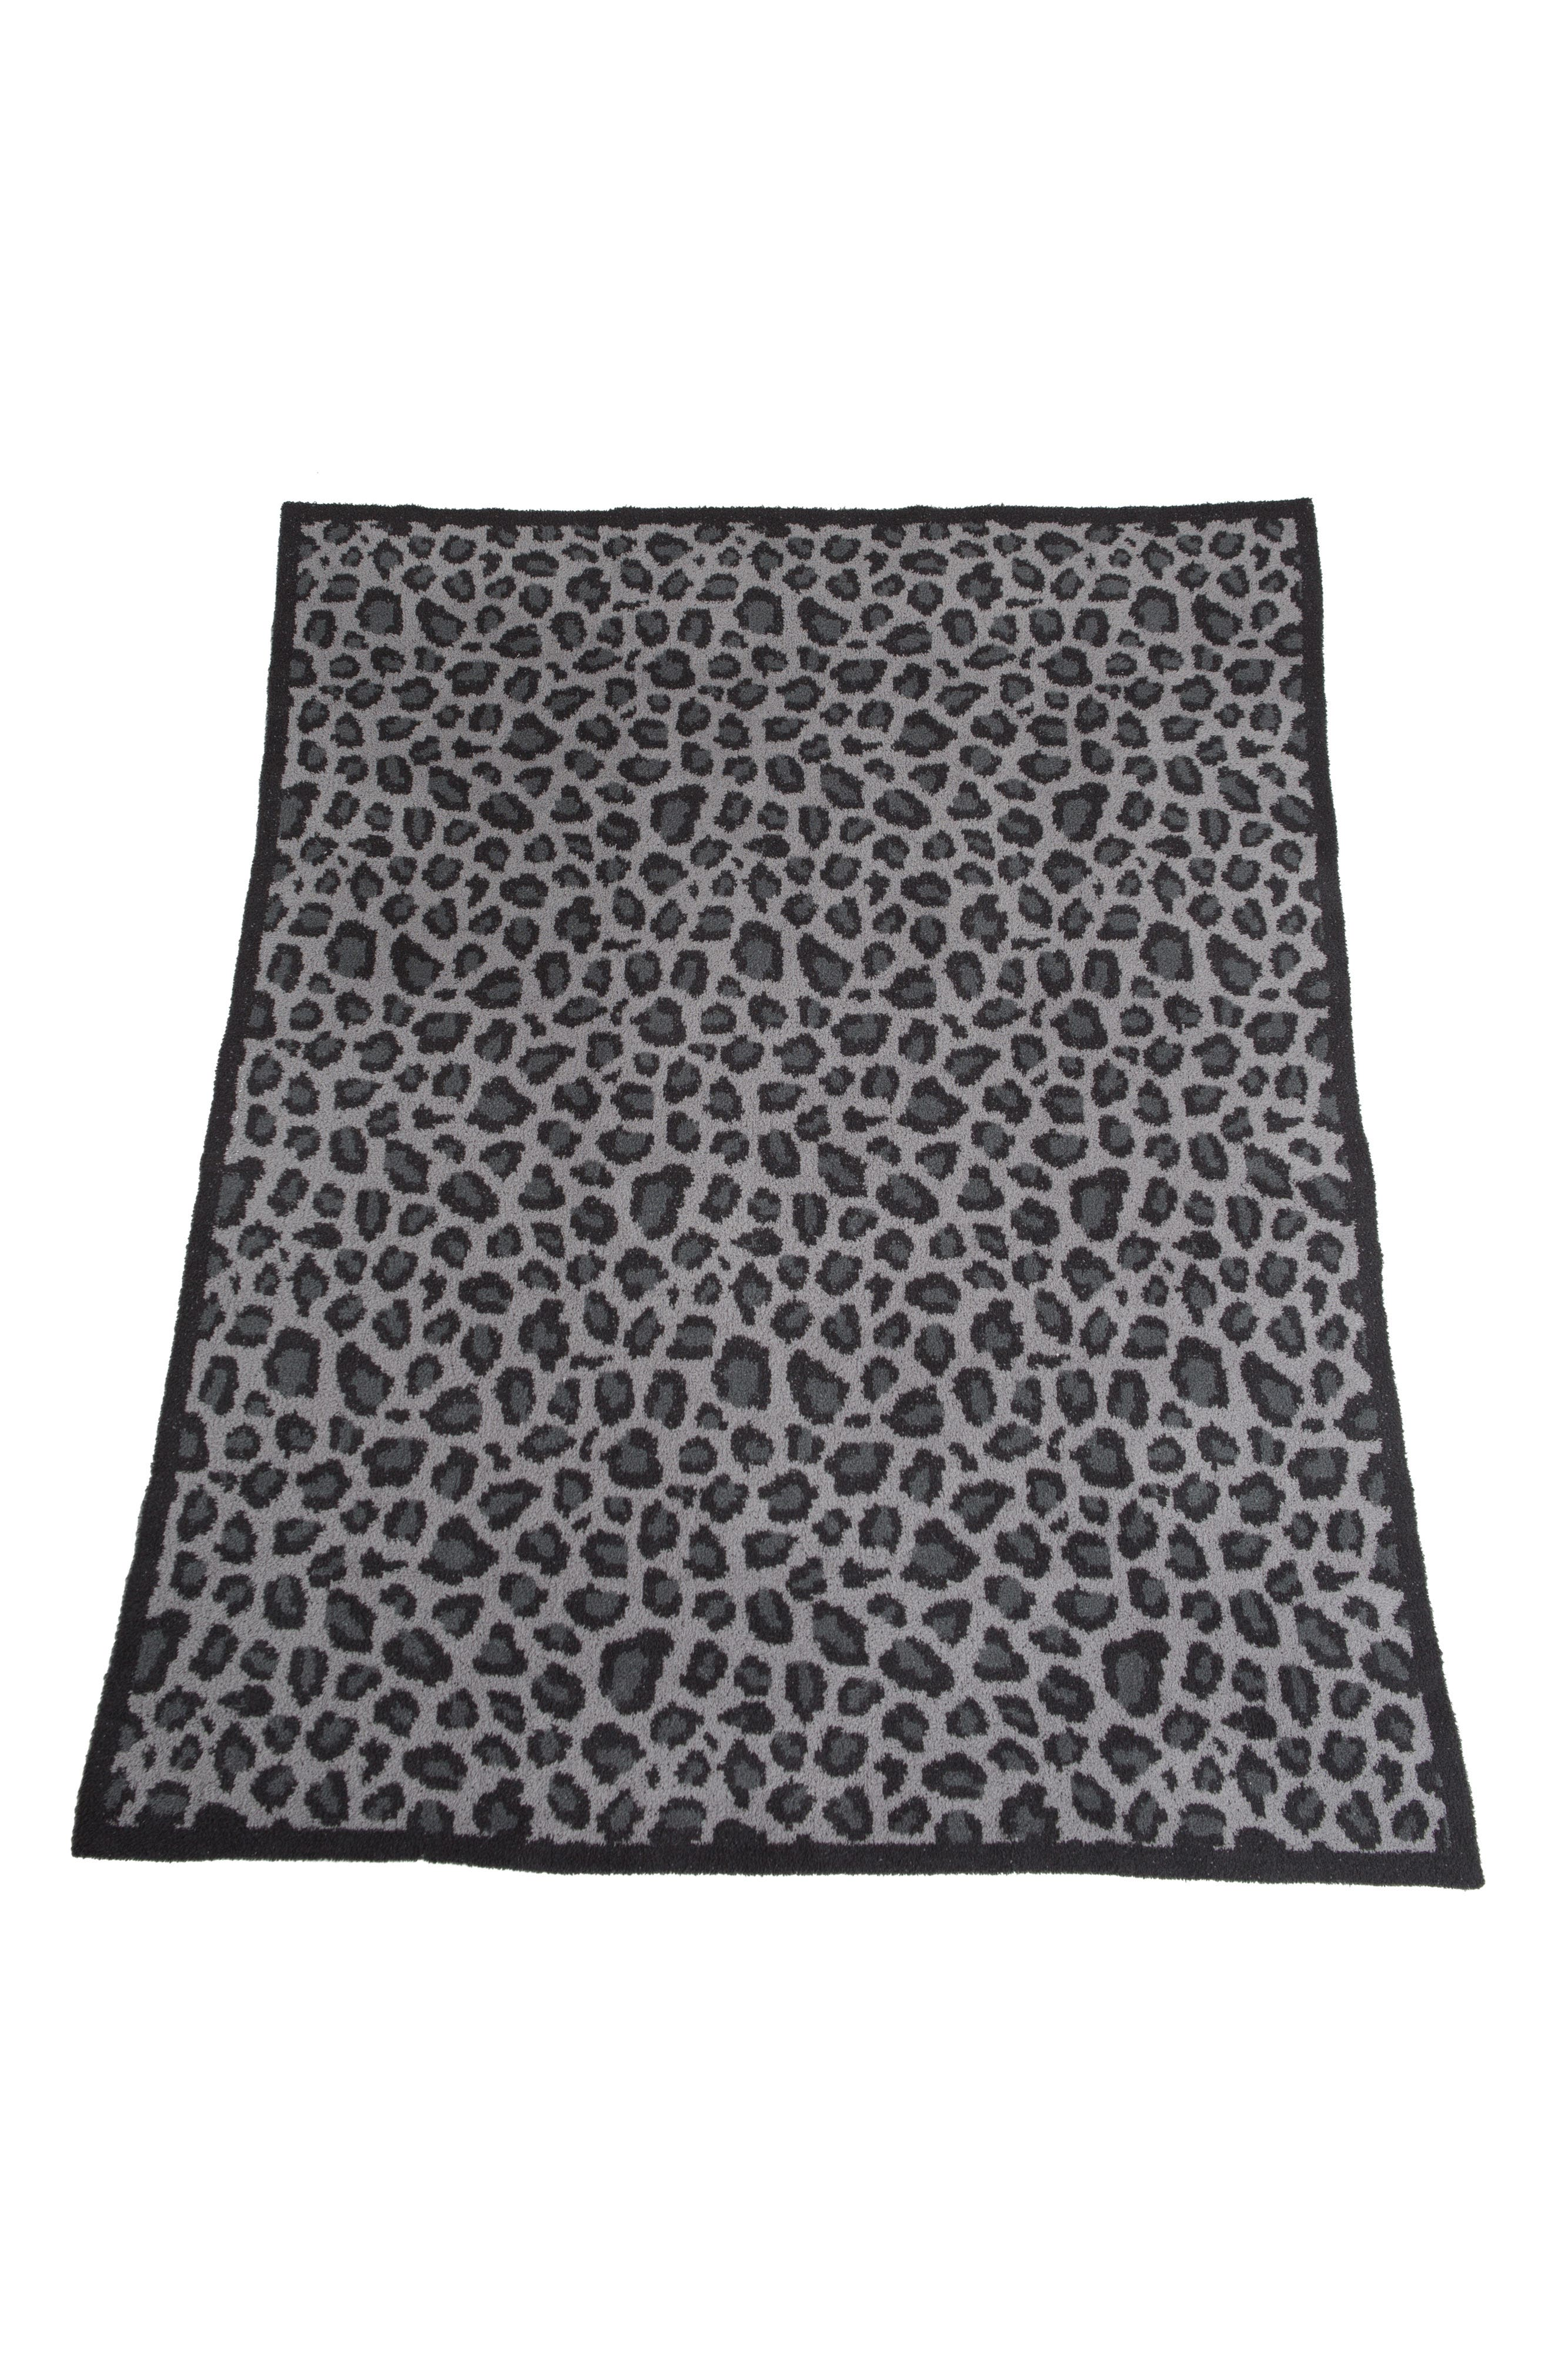 Cozy Chic™ Safari Blanket by Barefoot Dreams®